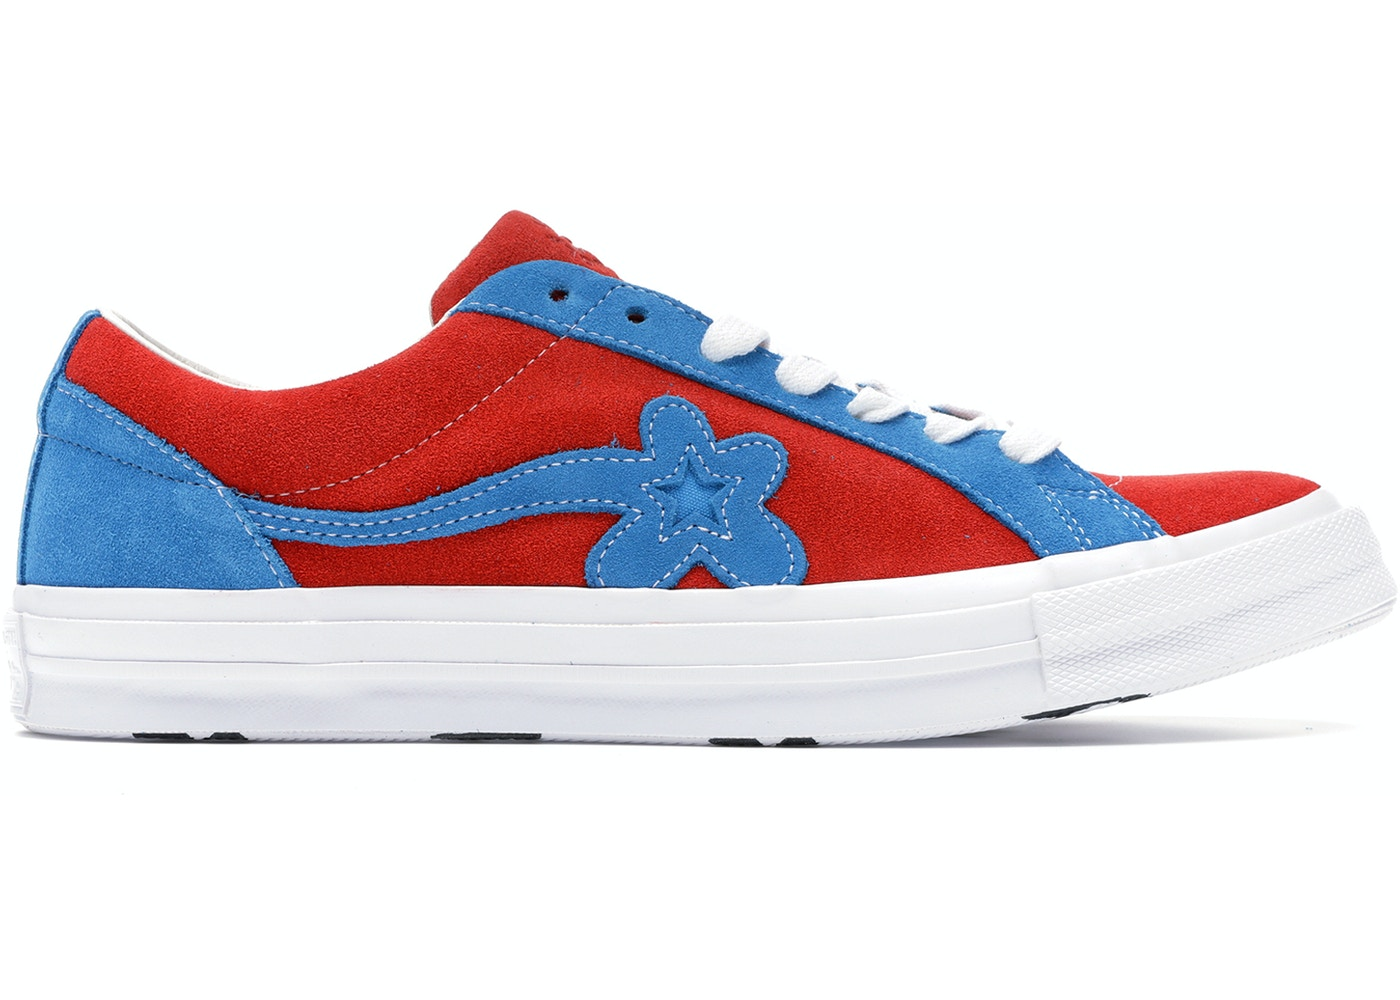 66cb8761248 Converse One Star Ox Tyler the Creator Golf Le Fleur Red Blue - 162126C